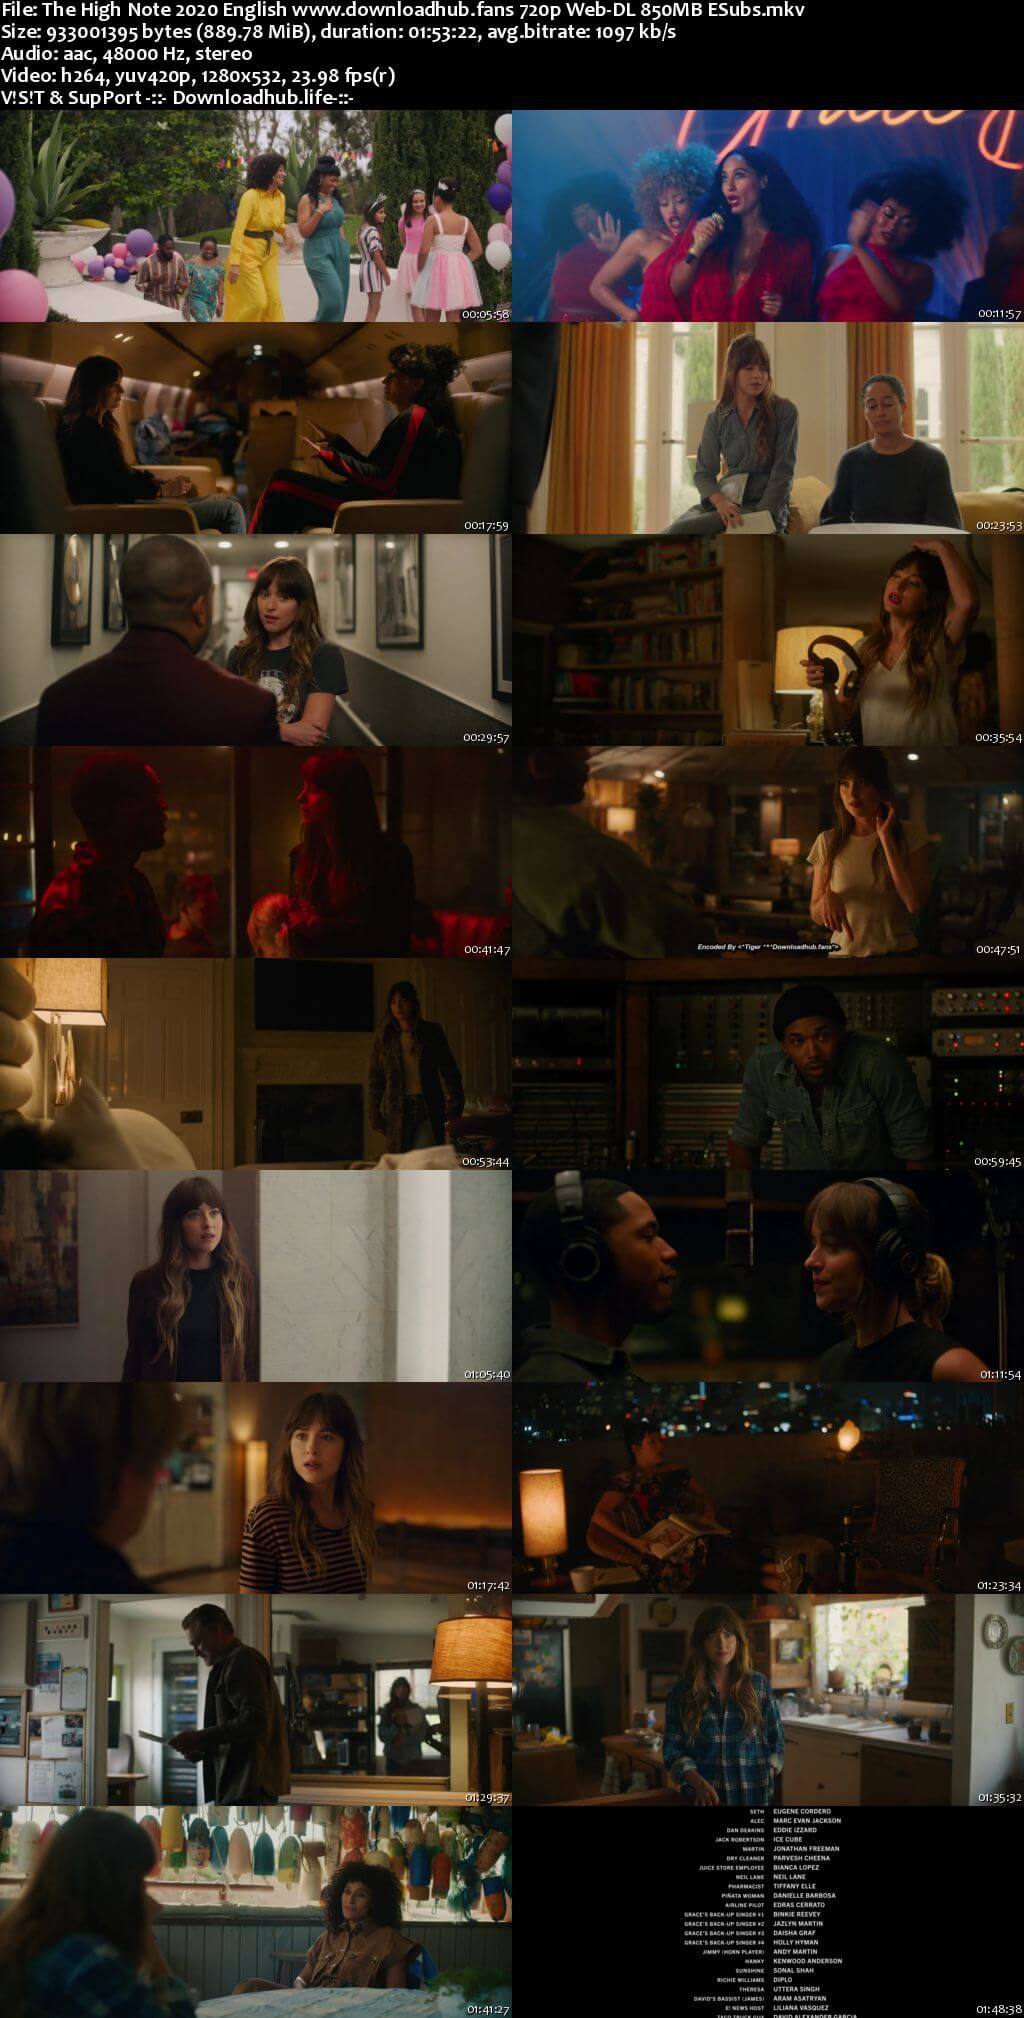 The High Note 2020 English 720p Web-DL 850MB ESubs